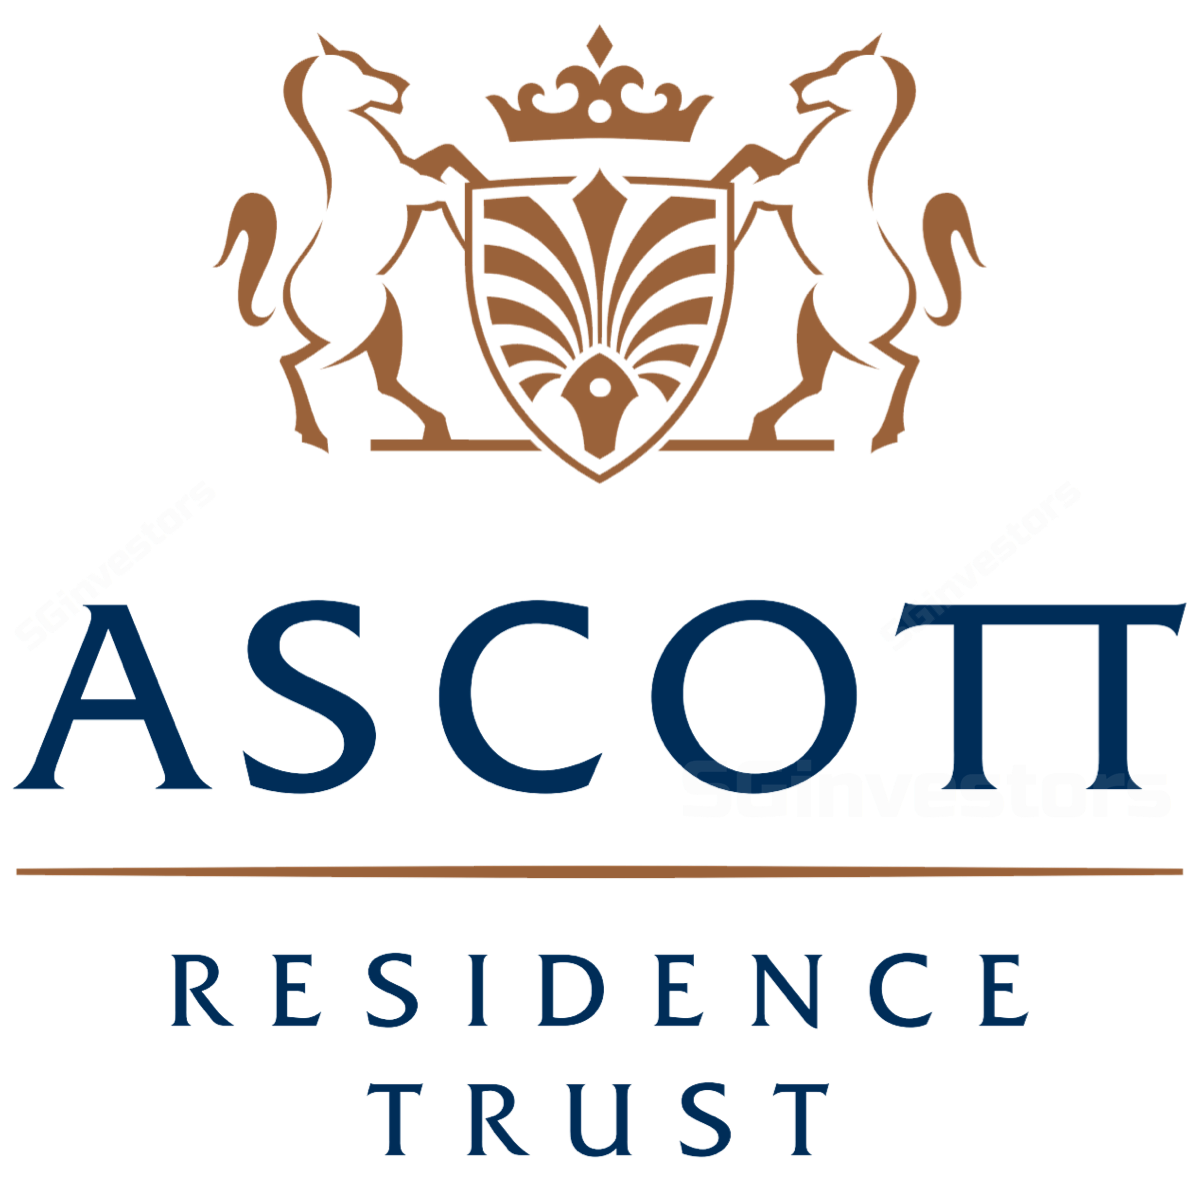 Ascott Residence Trust - OCBC Investment 2017-04-24: Strategic recycling of assets